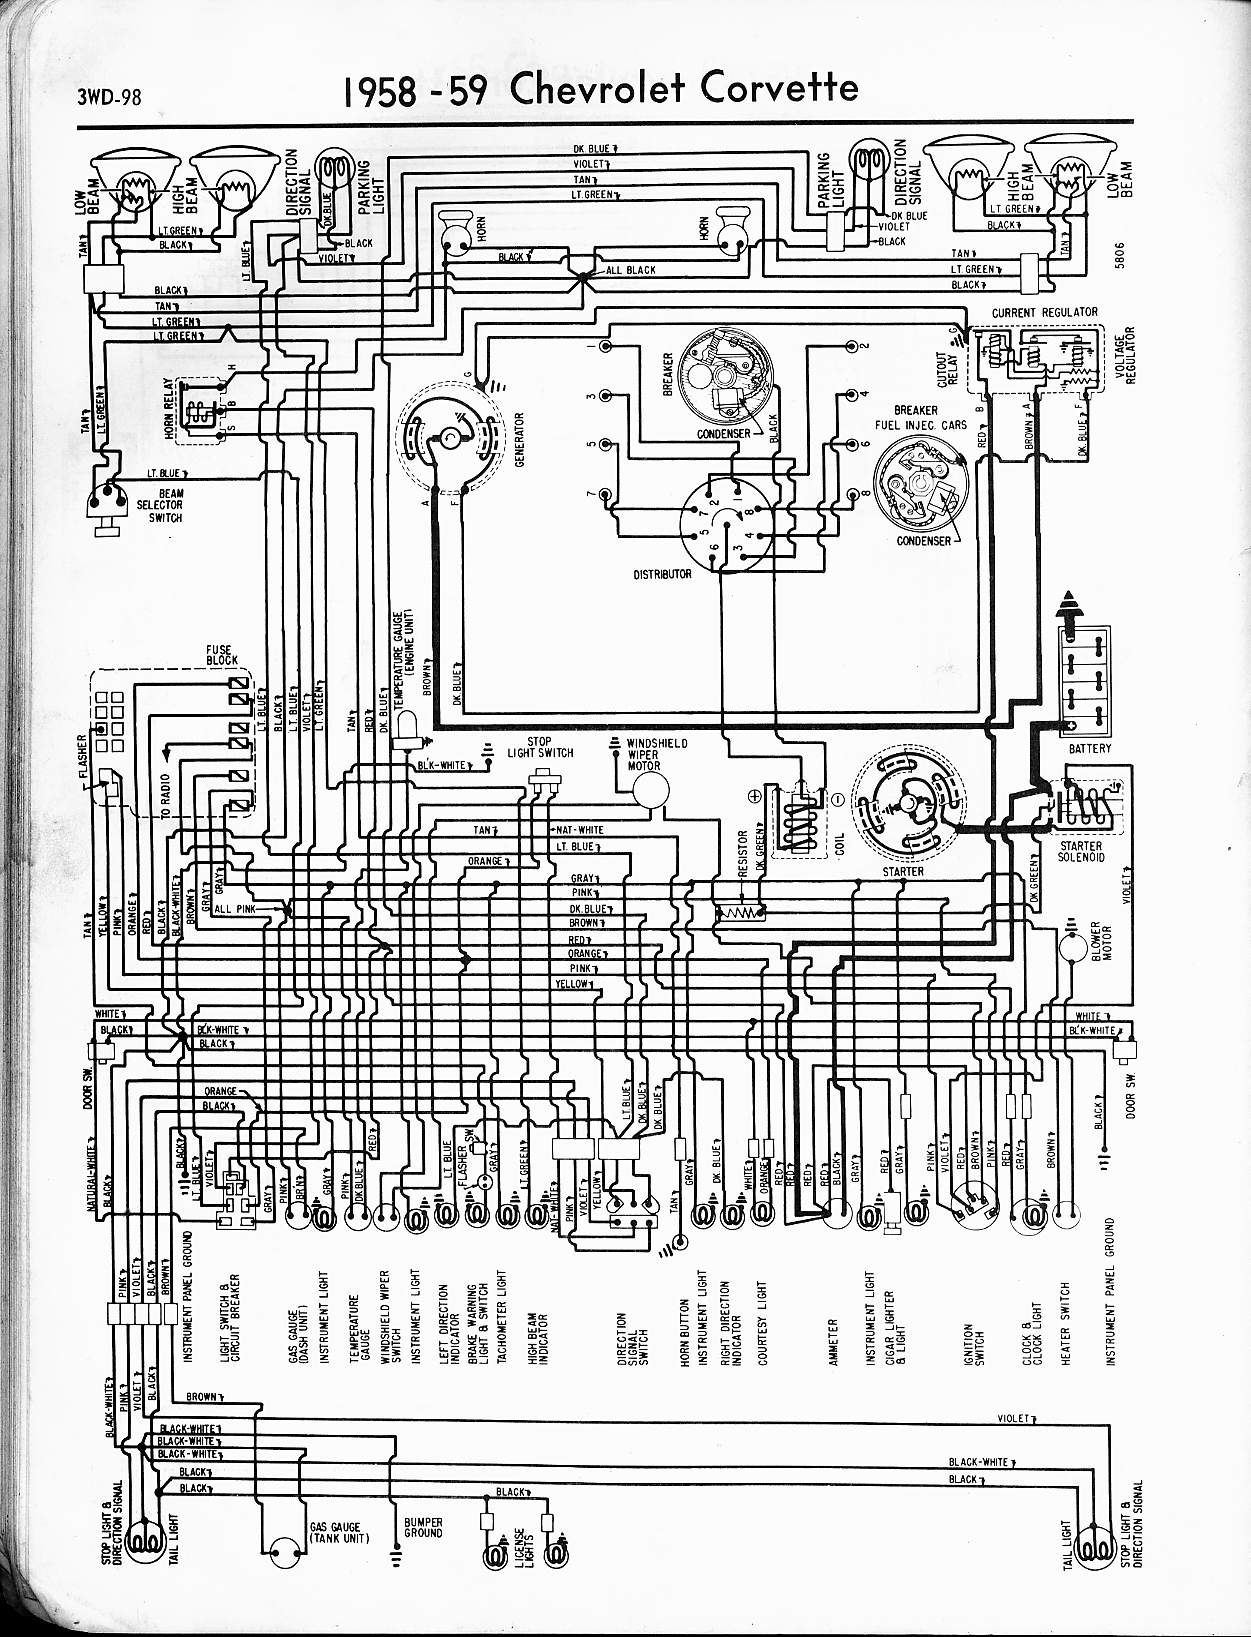 MWireChev58_3WD 098 57 65 chevy wiring diagrams 1965 corvair wiring diagram at soozxer.org